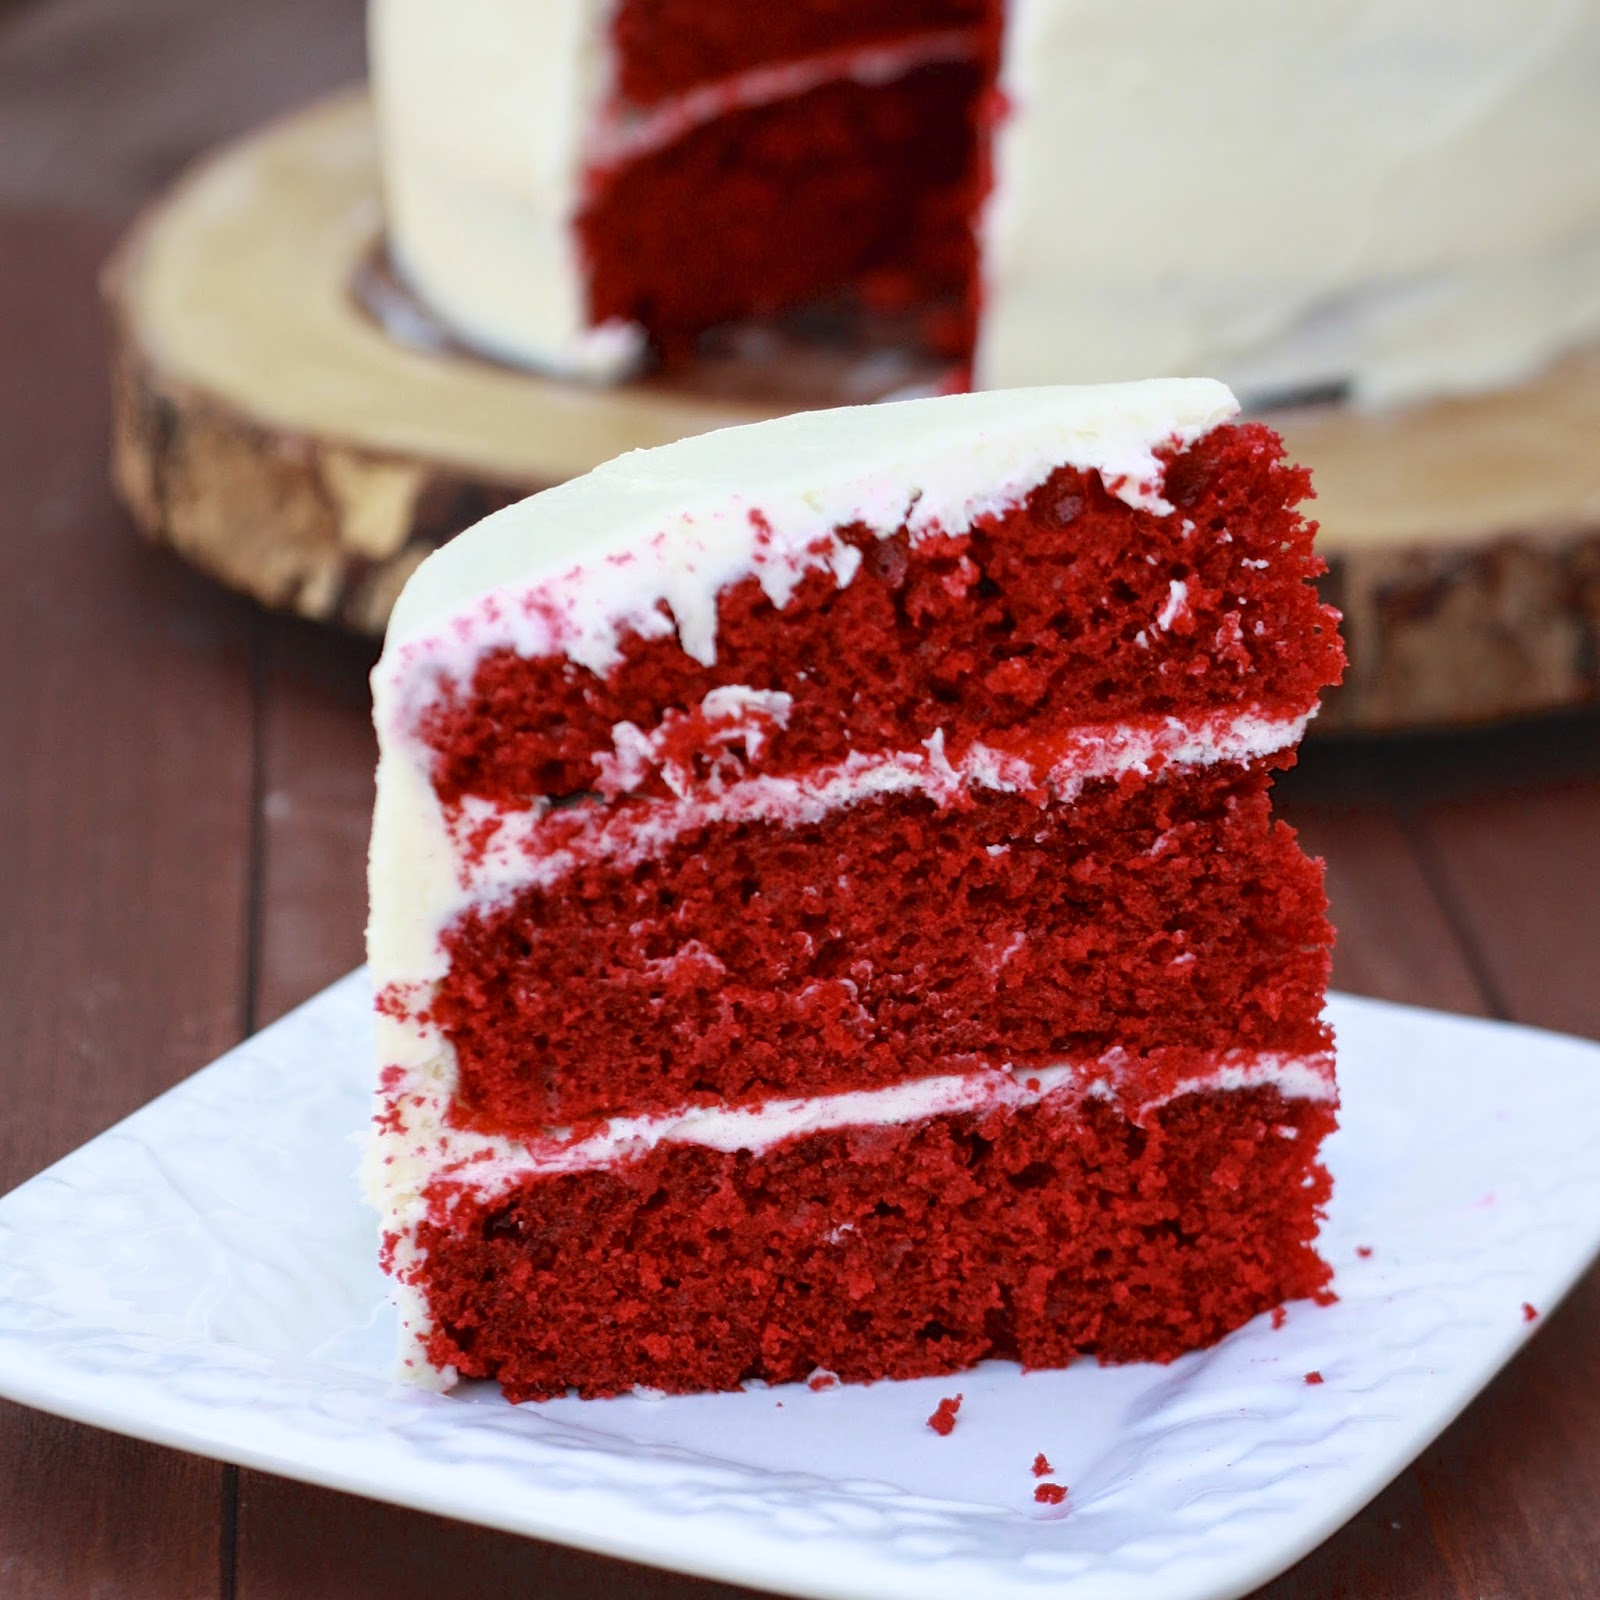 Red Velvet Cake | The Sweets Life